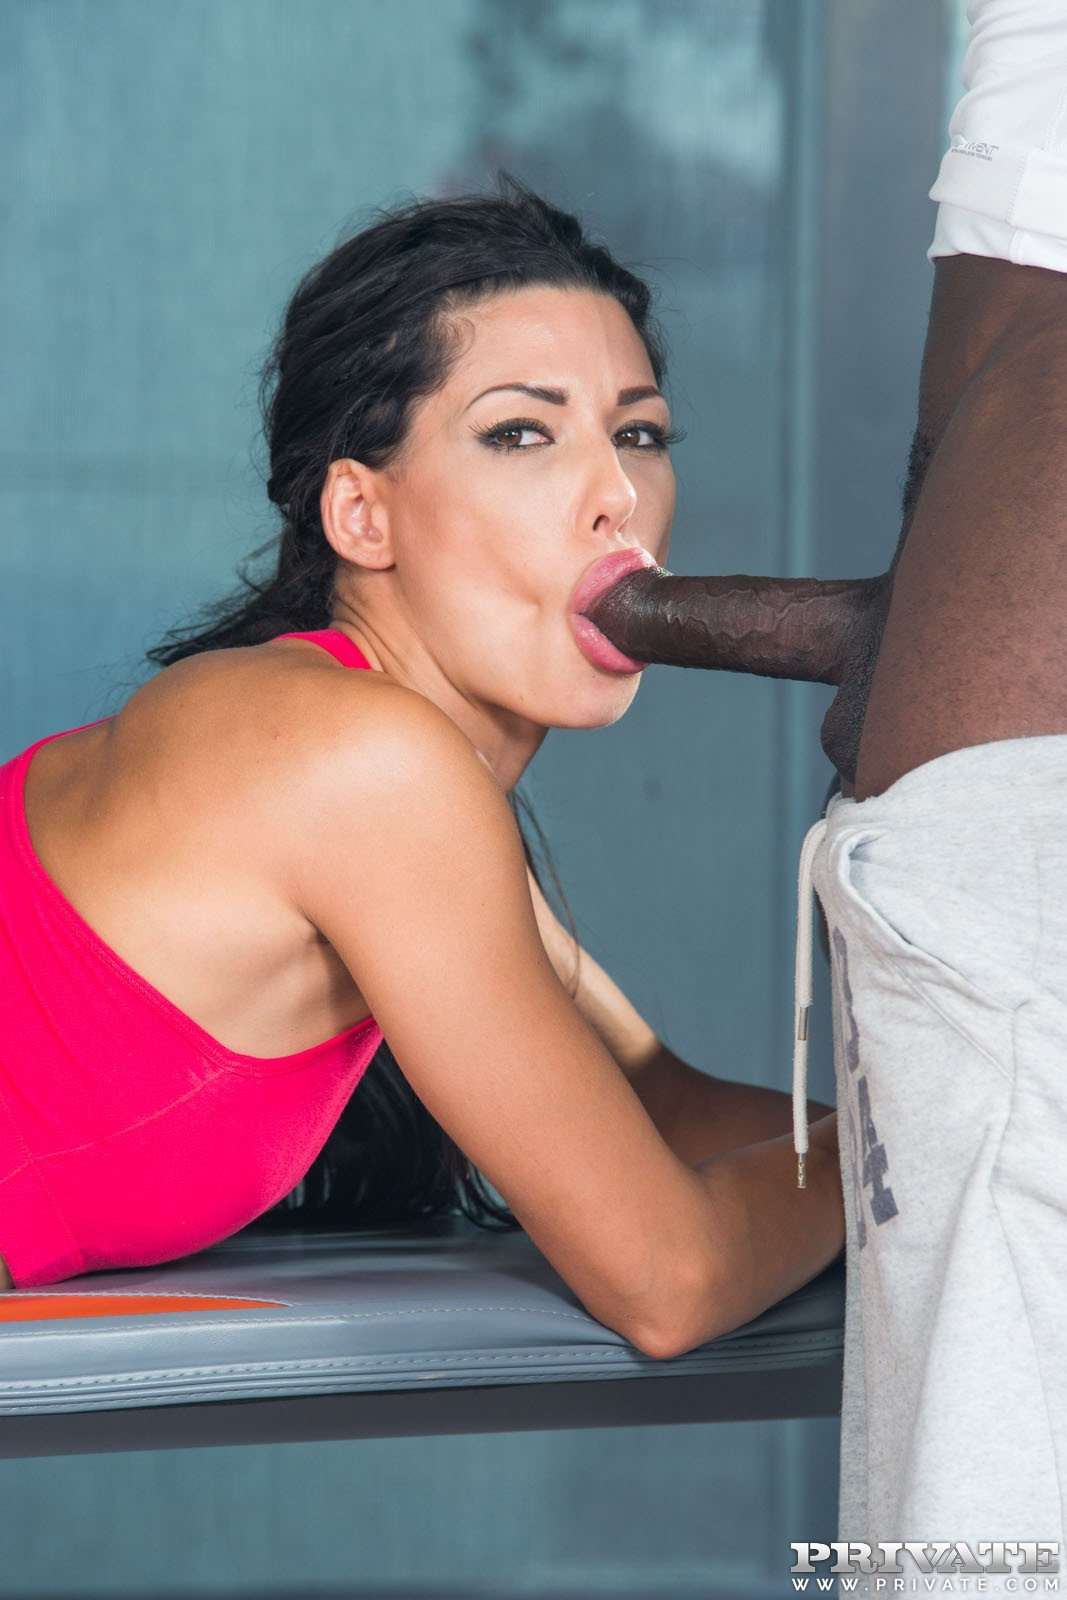 alexa-tomas-first-interracial-anal-ends-with-and-anal-cream-5482599-2913233622.jpg